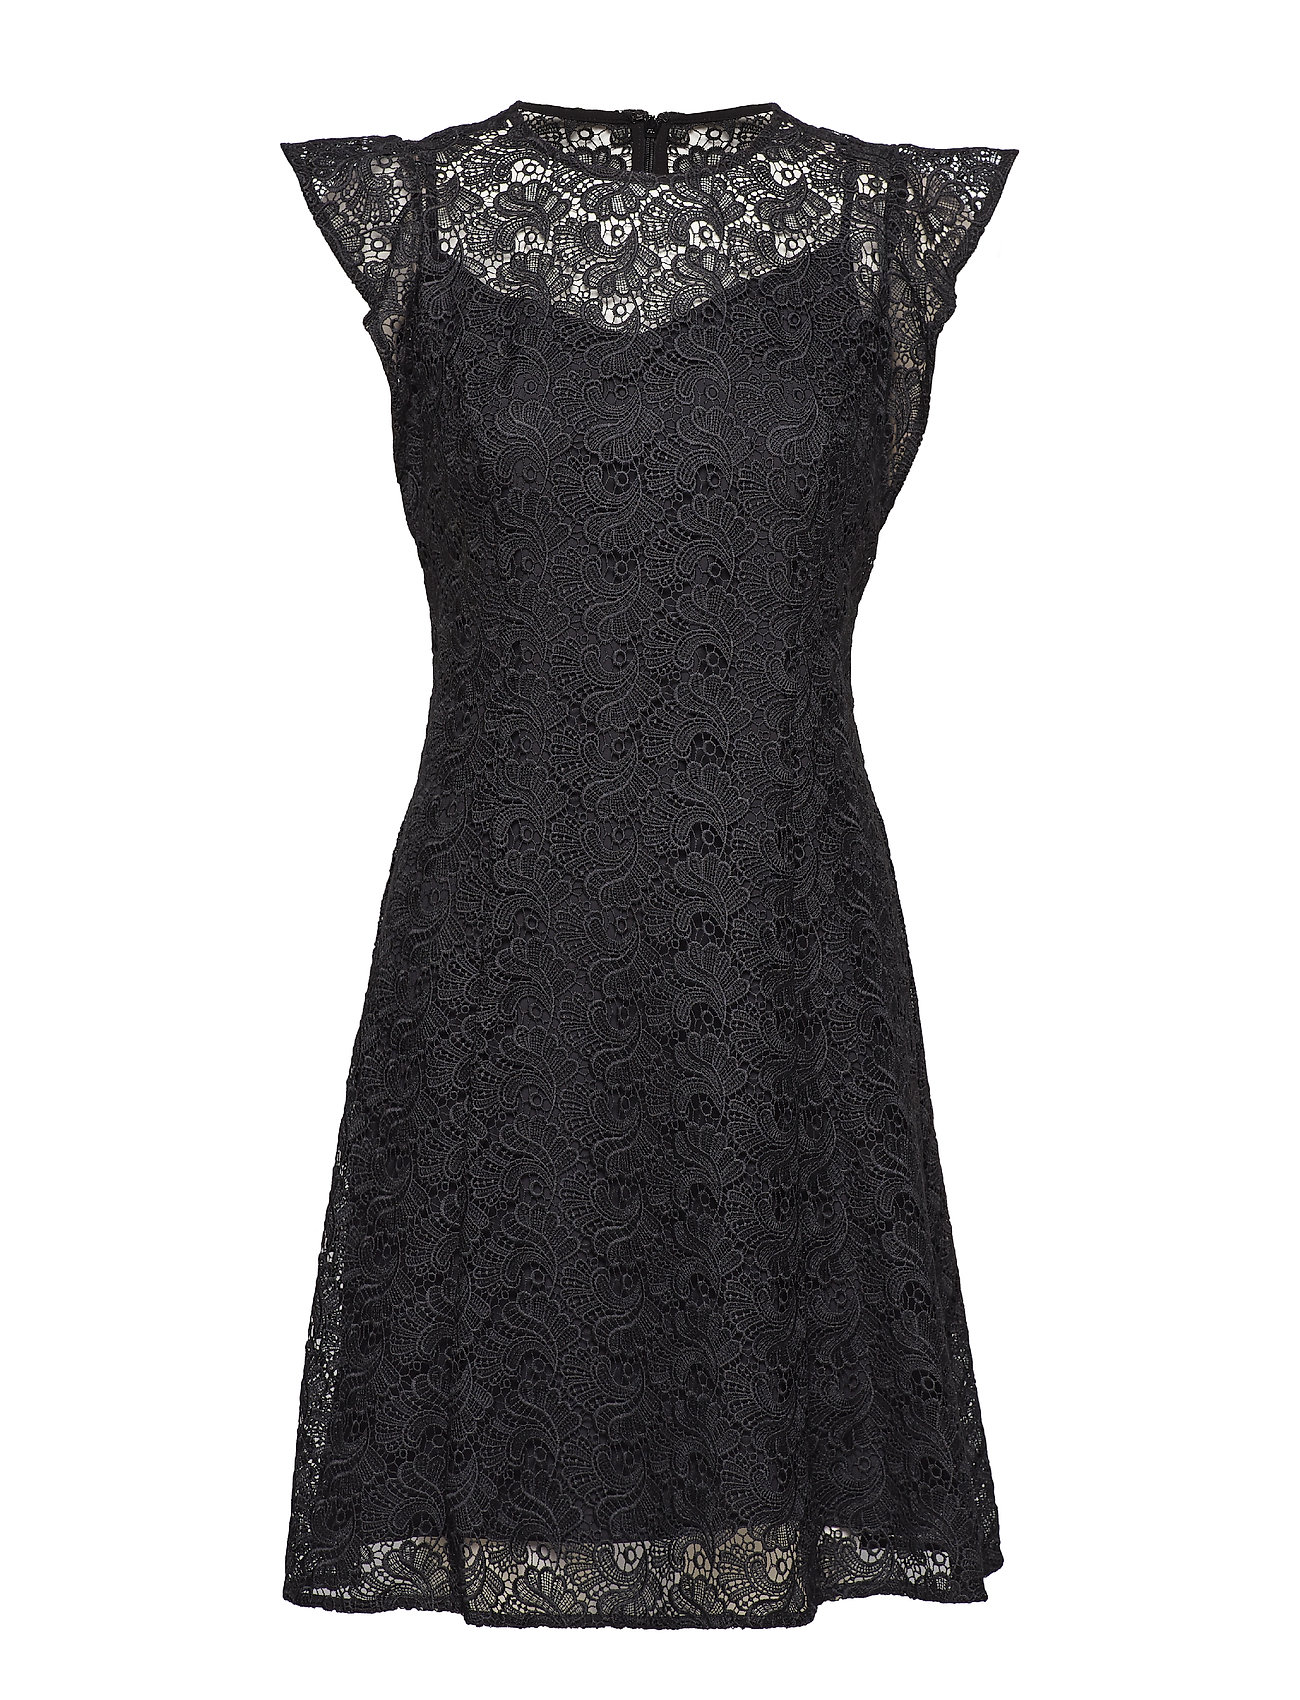 Image of Lace Flounce Slv Dres (3073374451)